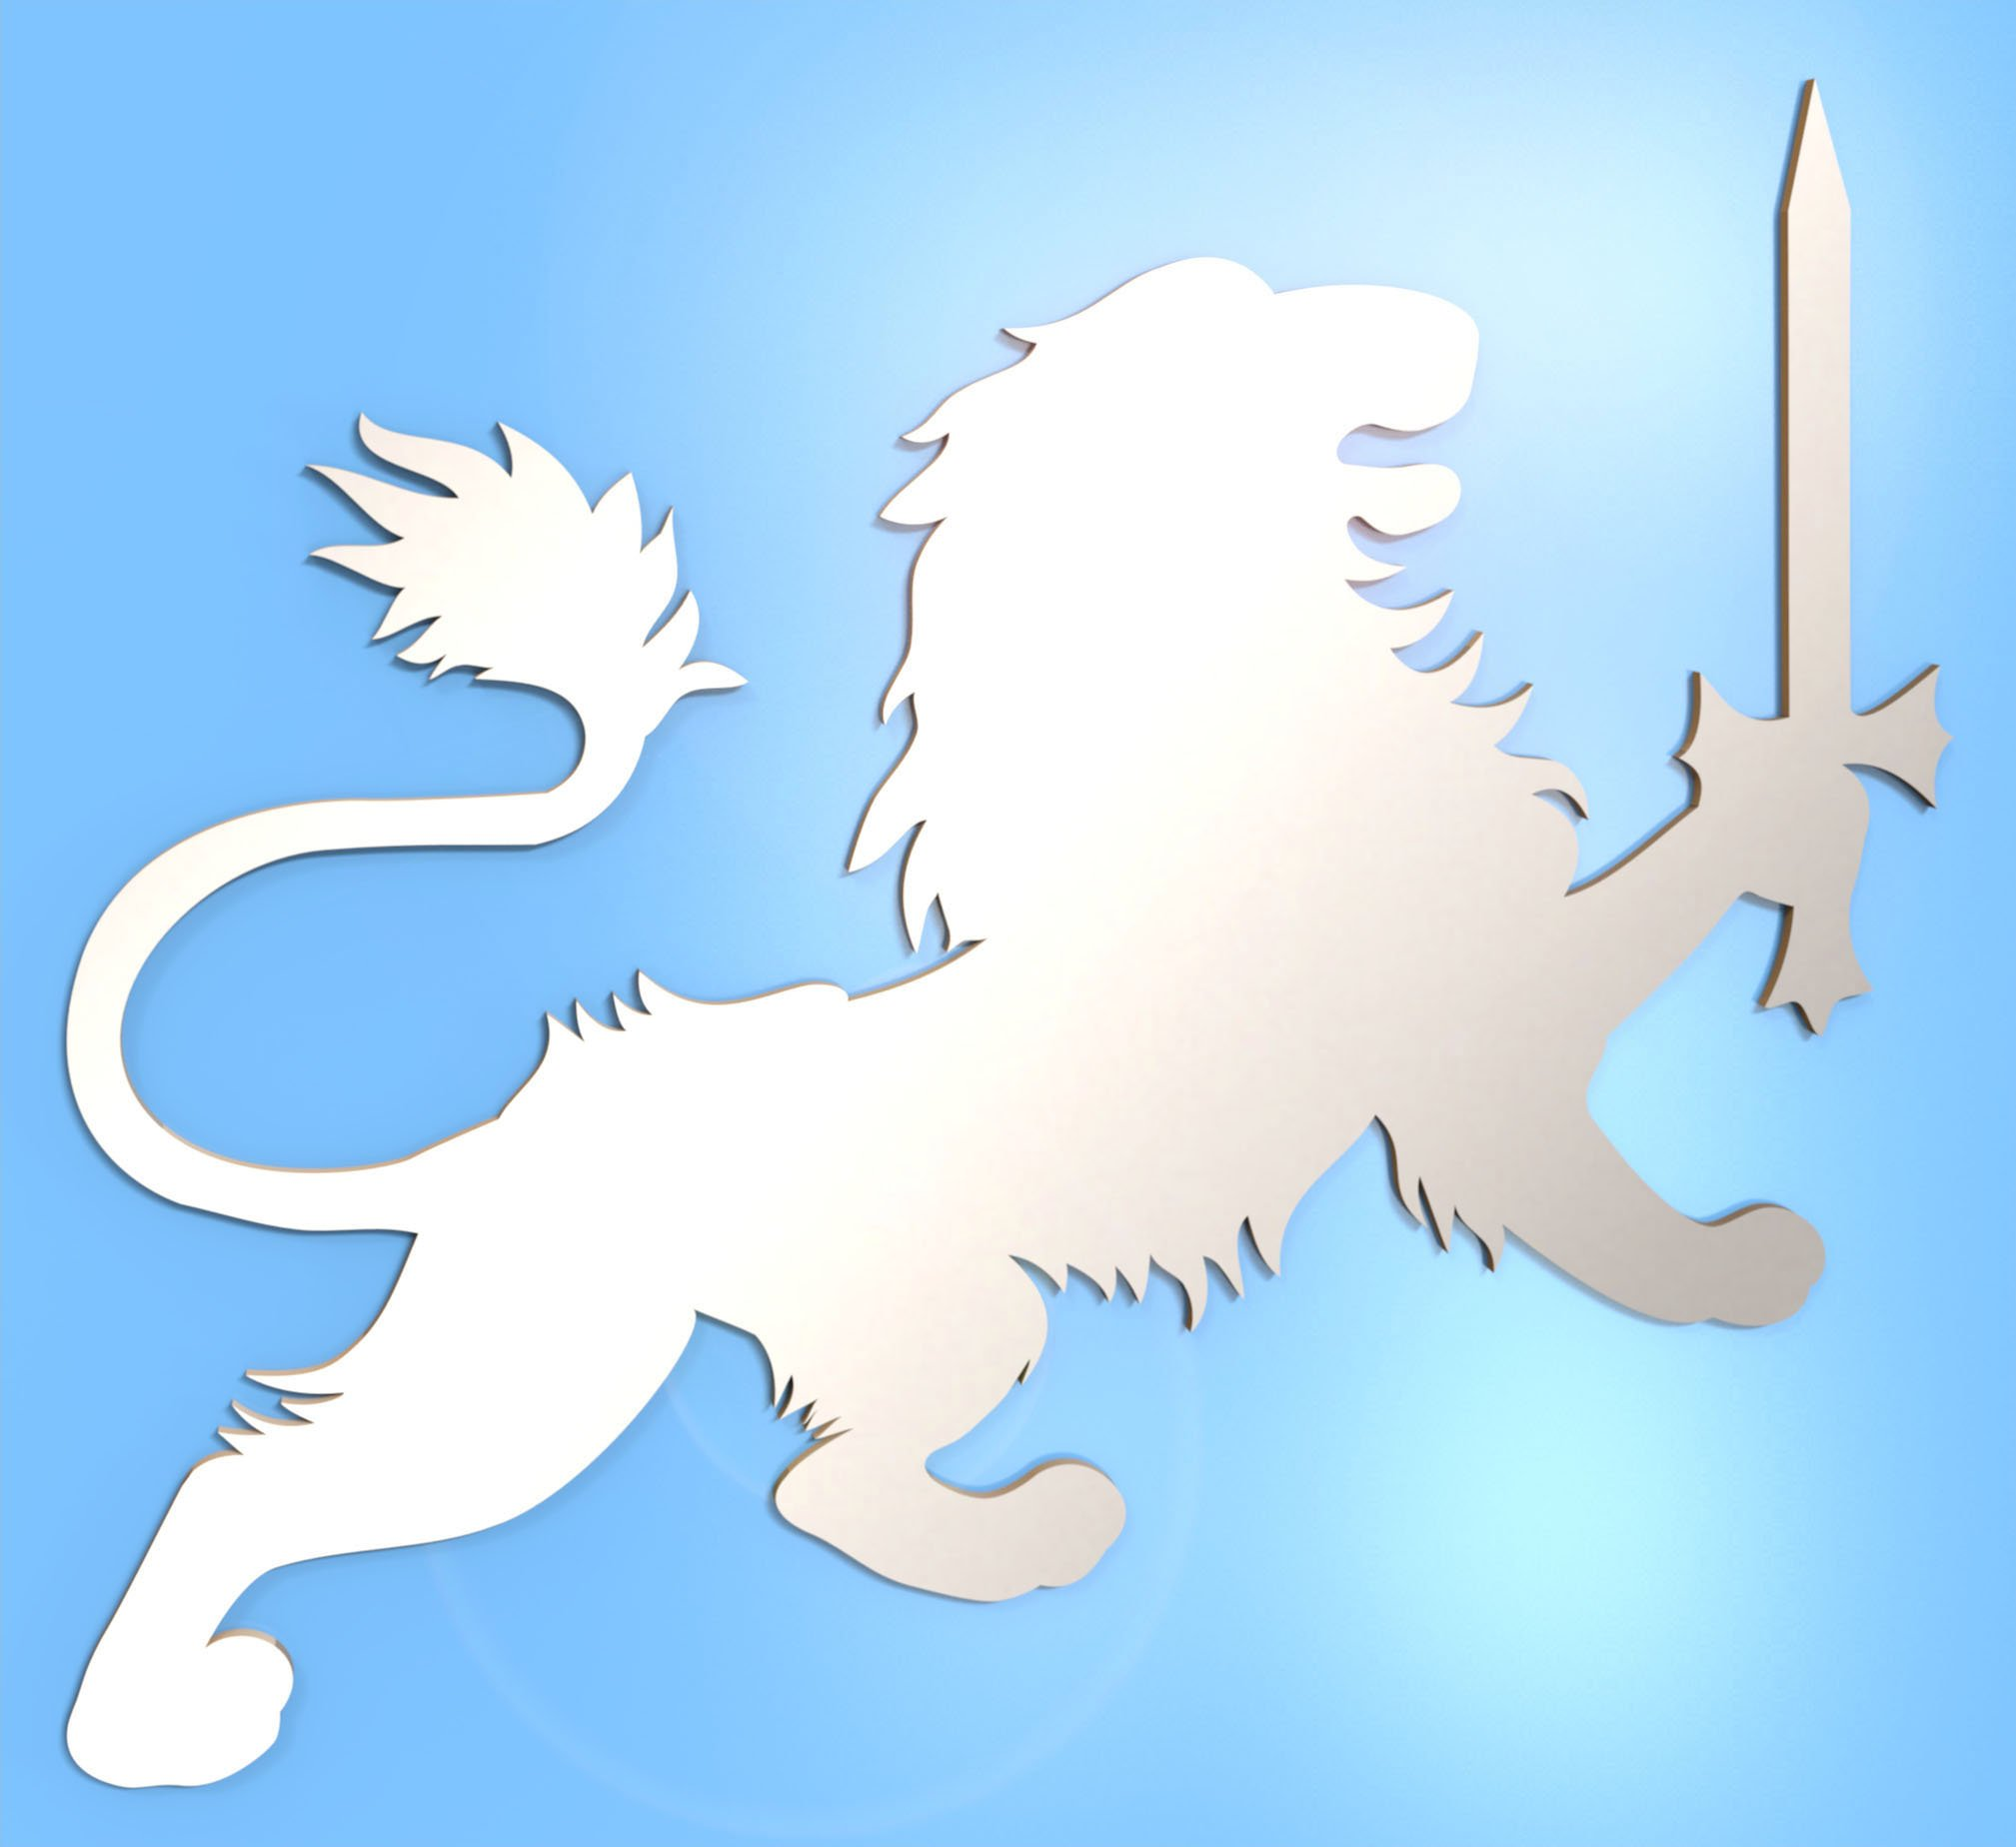 Lionheart Mirror - Available in various sizes, including sets for crafting kits - 50cm x 41.5cm